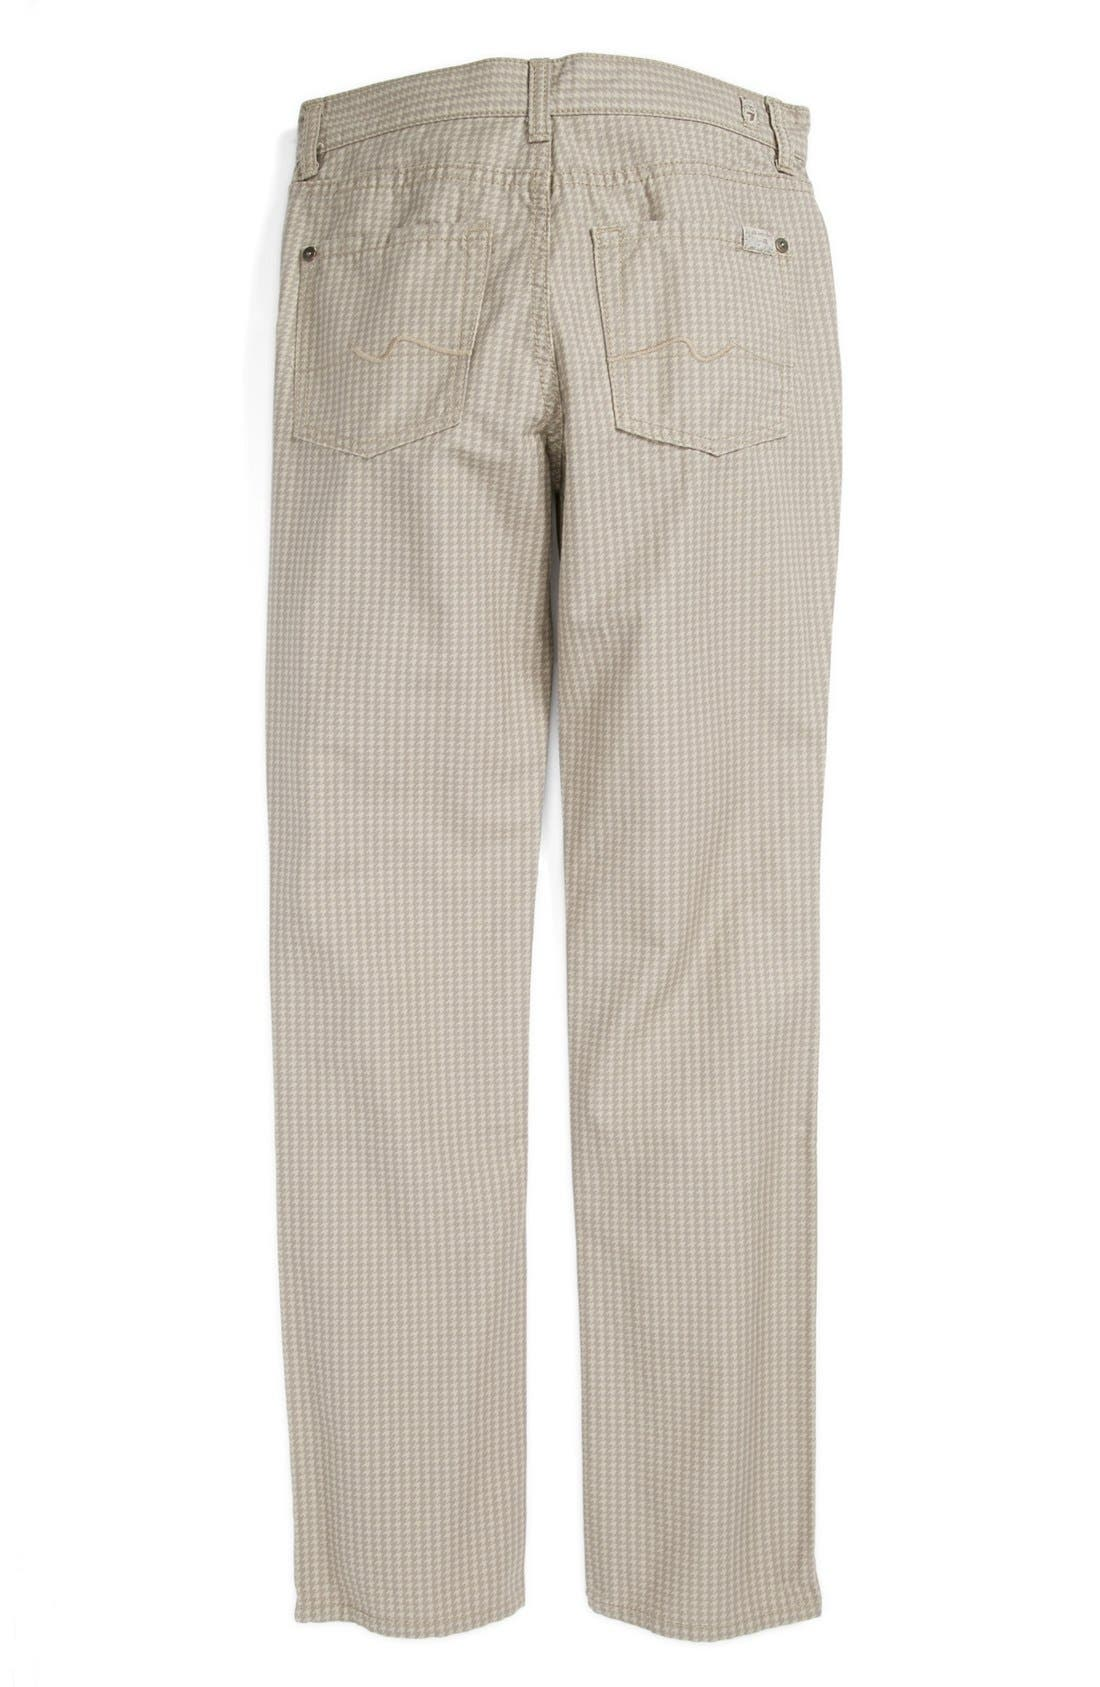 Main Image - 7 For All Mankind® 'The Straight' Straight Leg Pants (Big Boys) (Online Only)